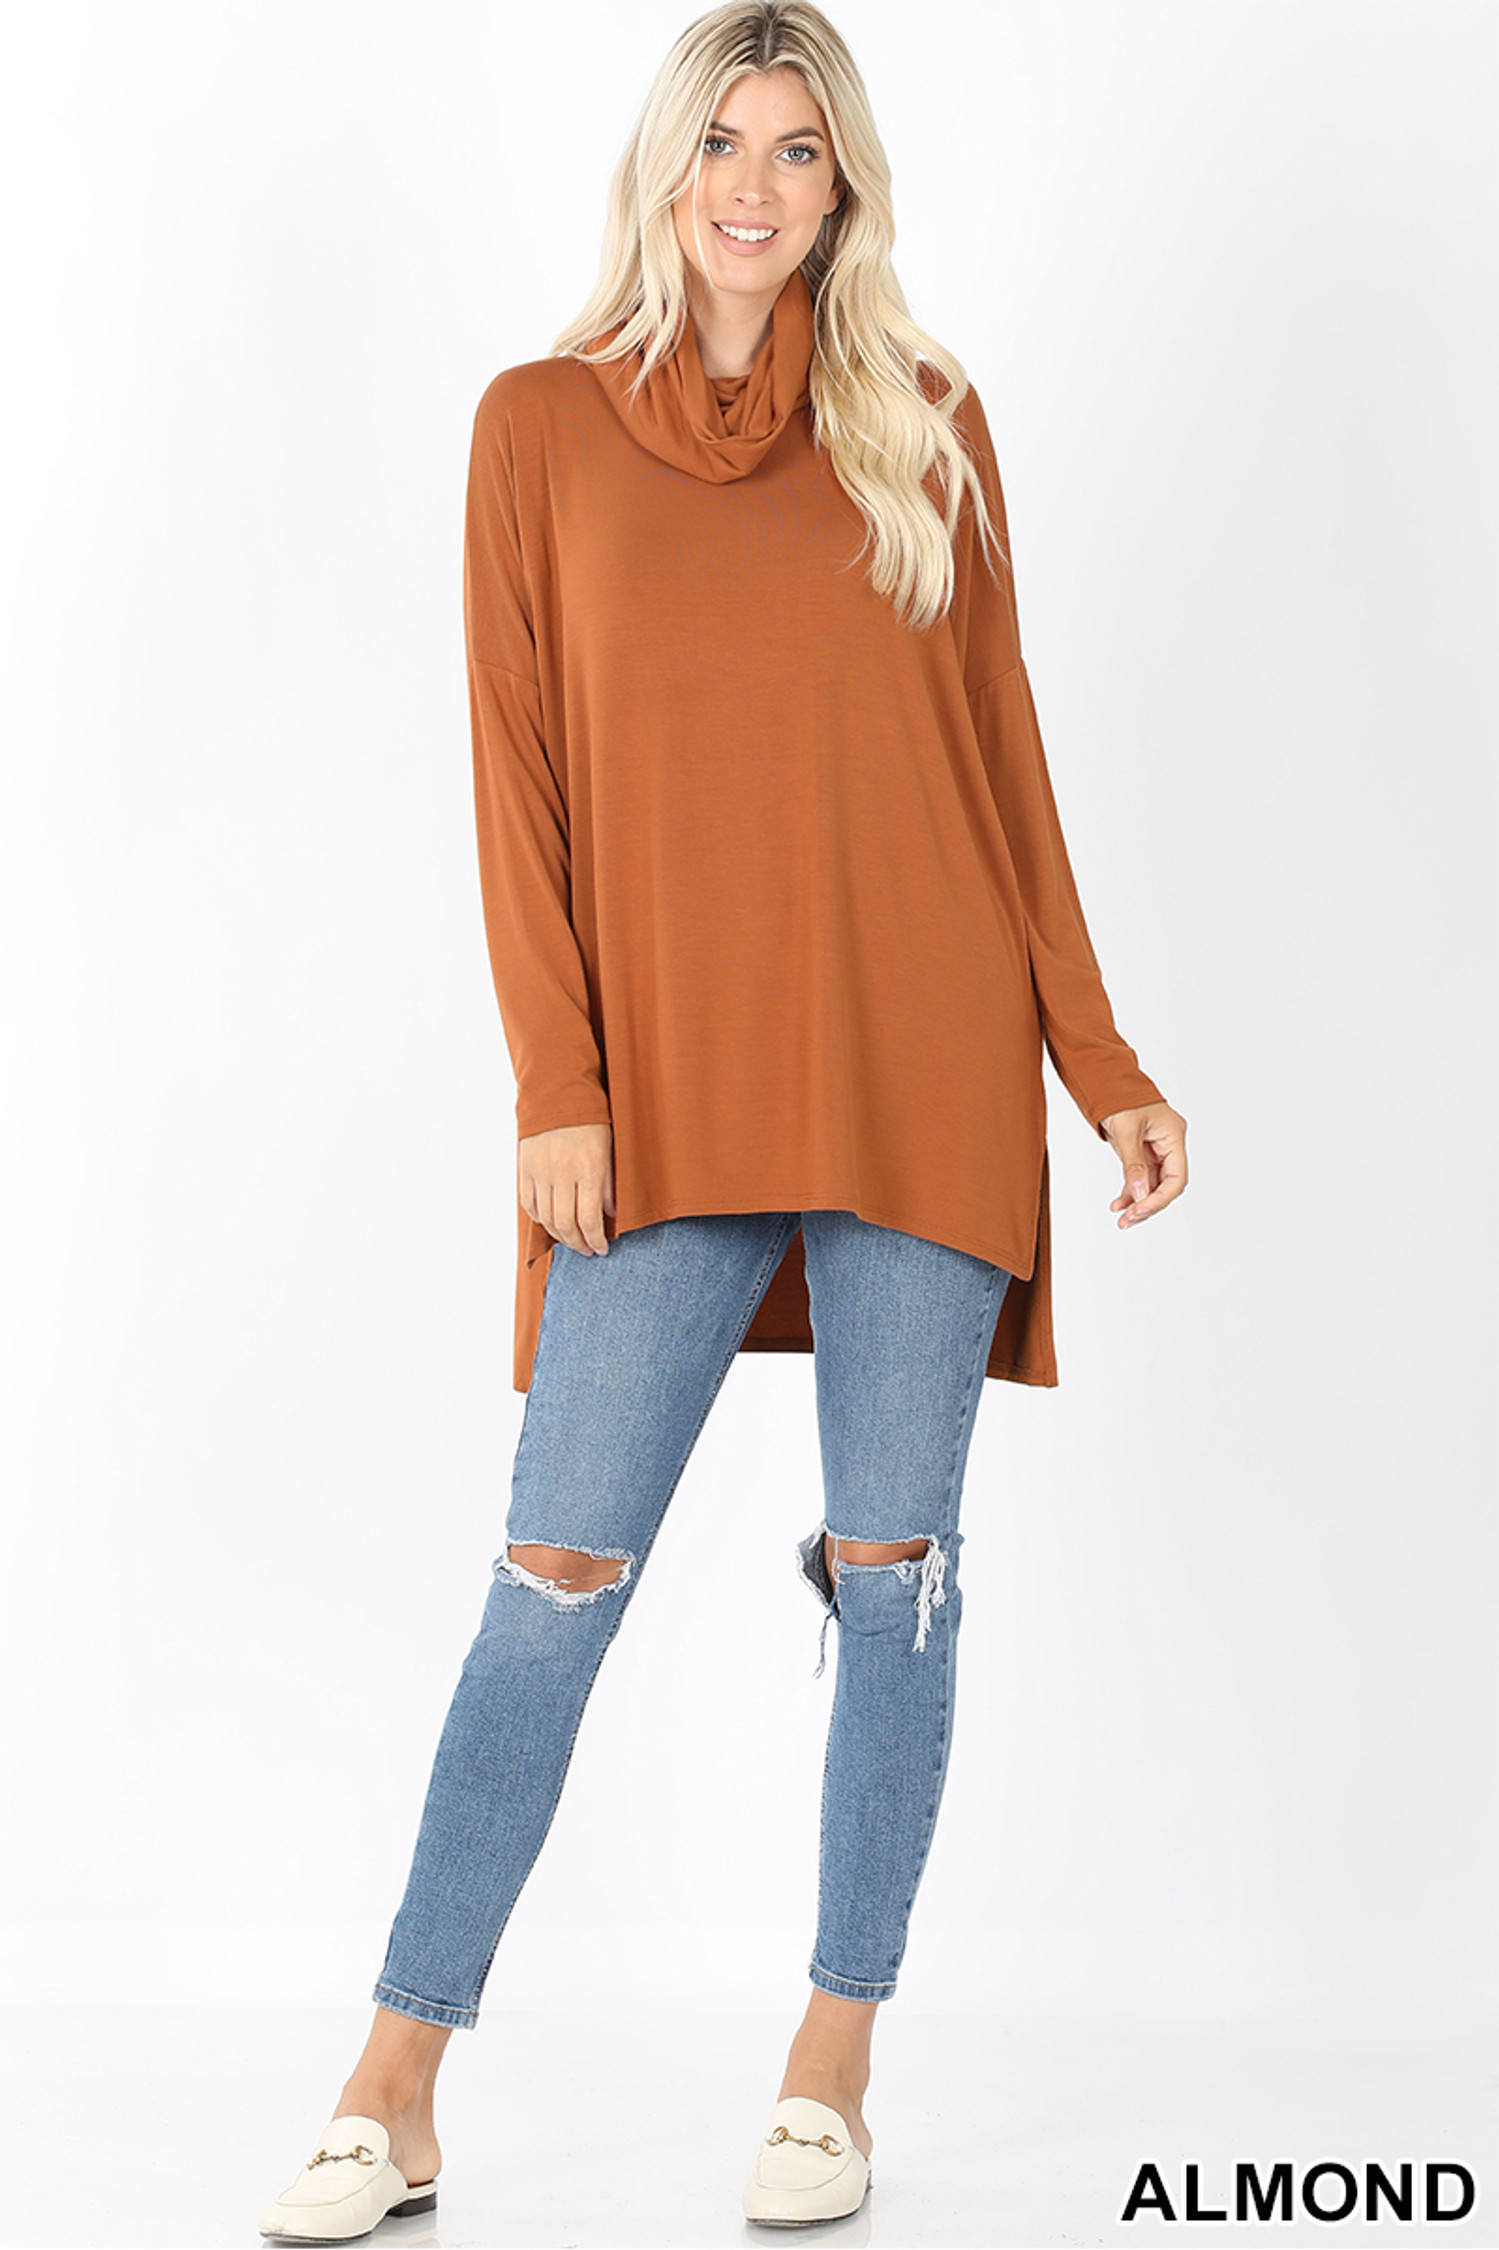 Full body front image of Almond Cowl Neck Hi-Low Long Sleeve Plus Size Top